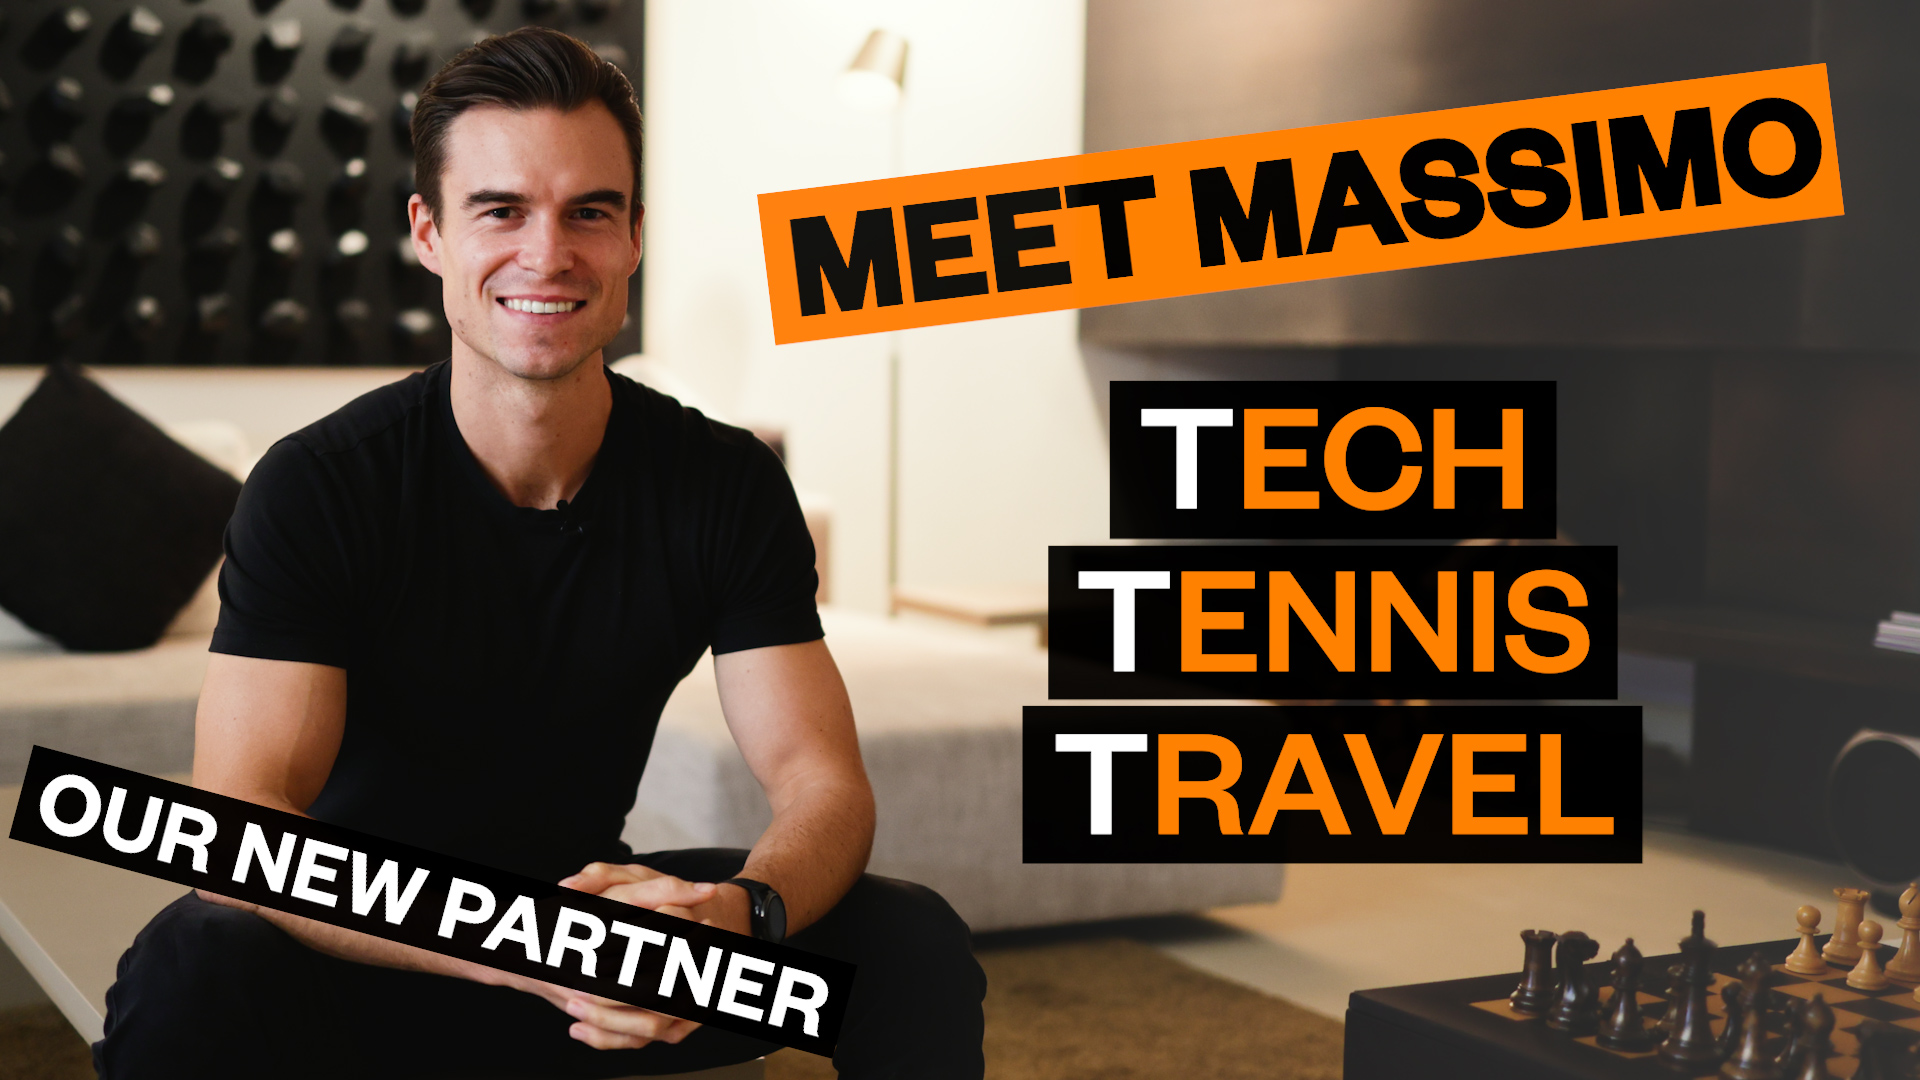 Meet our New Partner: Tech, Tennis, Travel